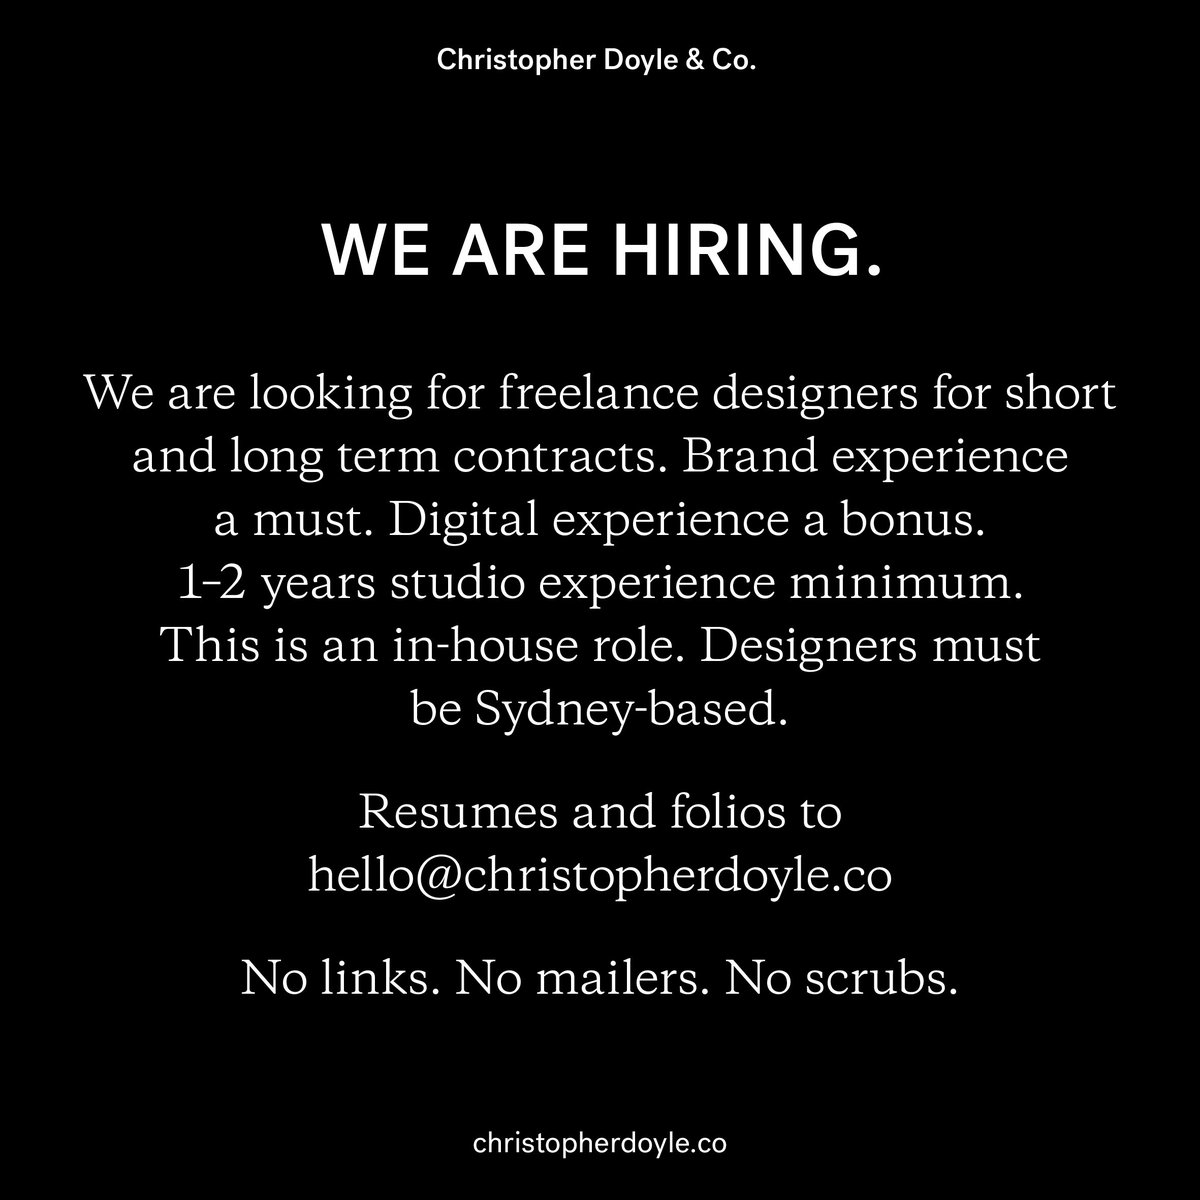 WE ARE HIRING— We are looking for freelance designers for short and long term contracts. https://t.co/DhraAAoofI